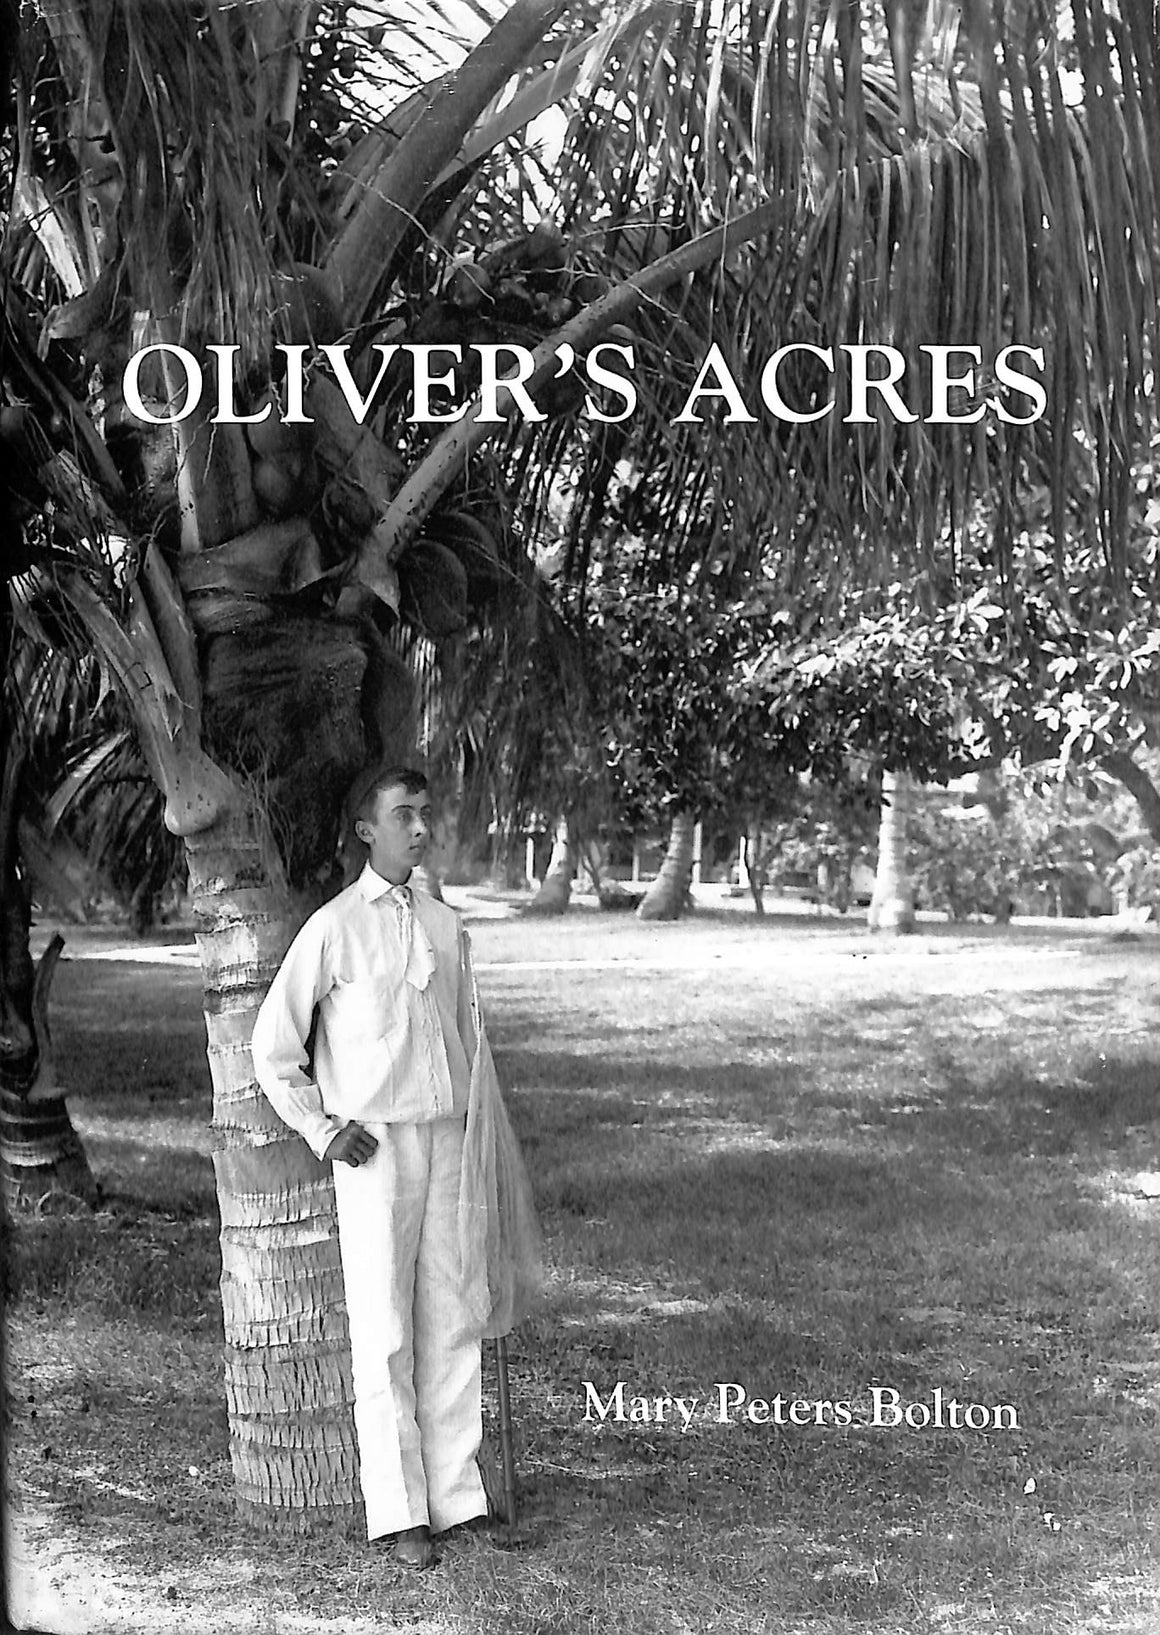 'Oliver's Acres' 1999 by Mary Peters Bolton